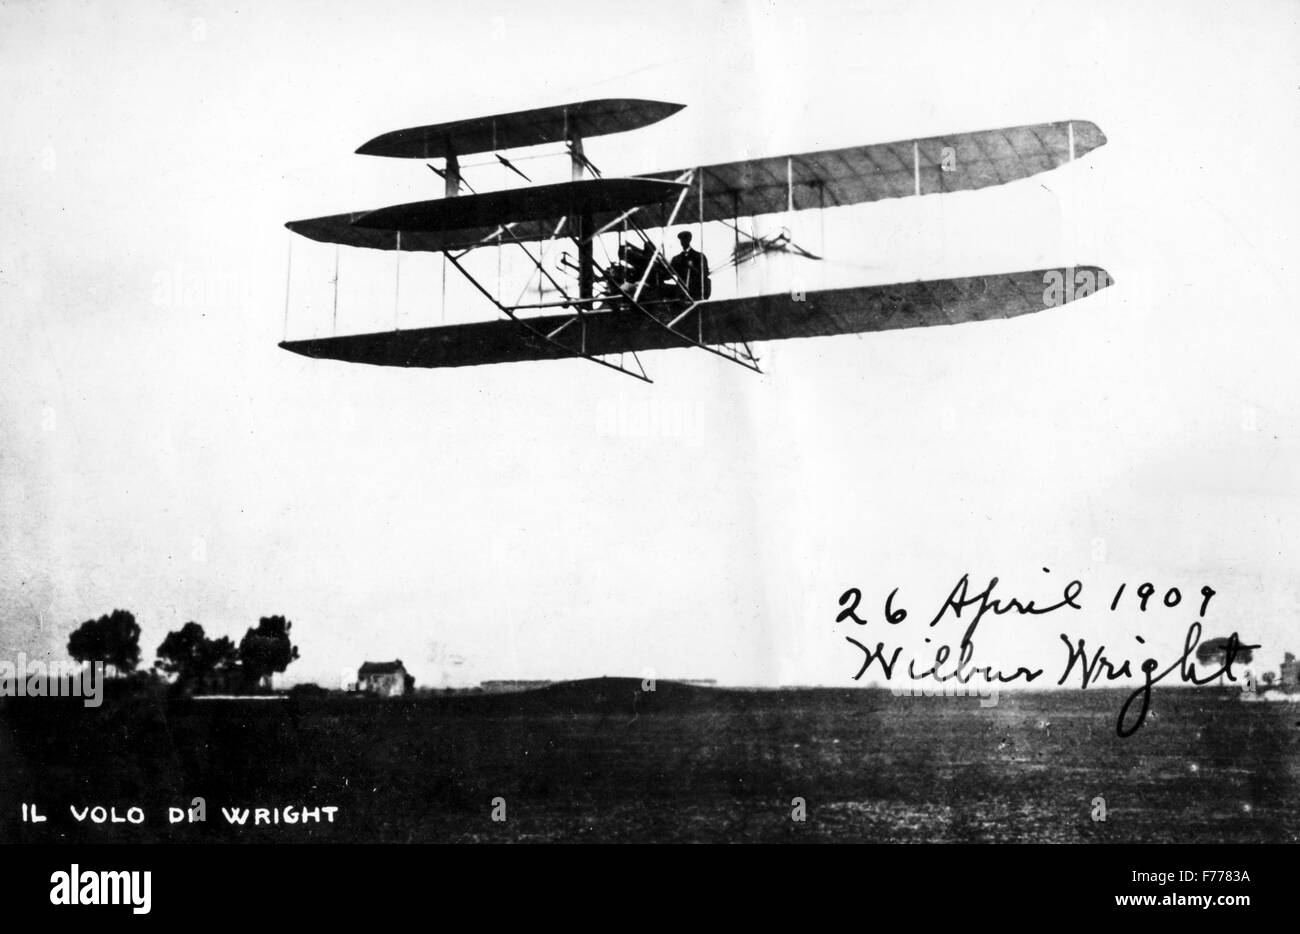 a flight of Wilbur Wright in a photo autographed by the same manufacturer and aviator,1909 - Stock Image